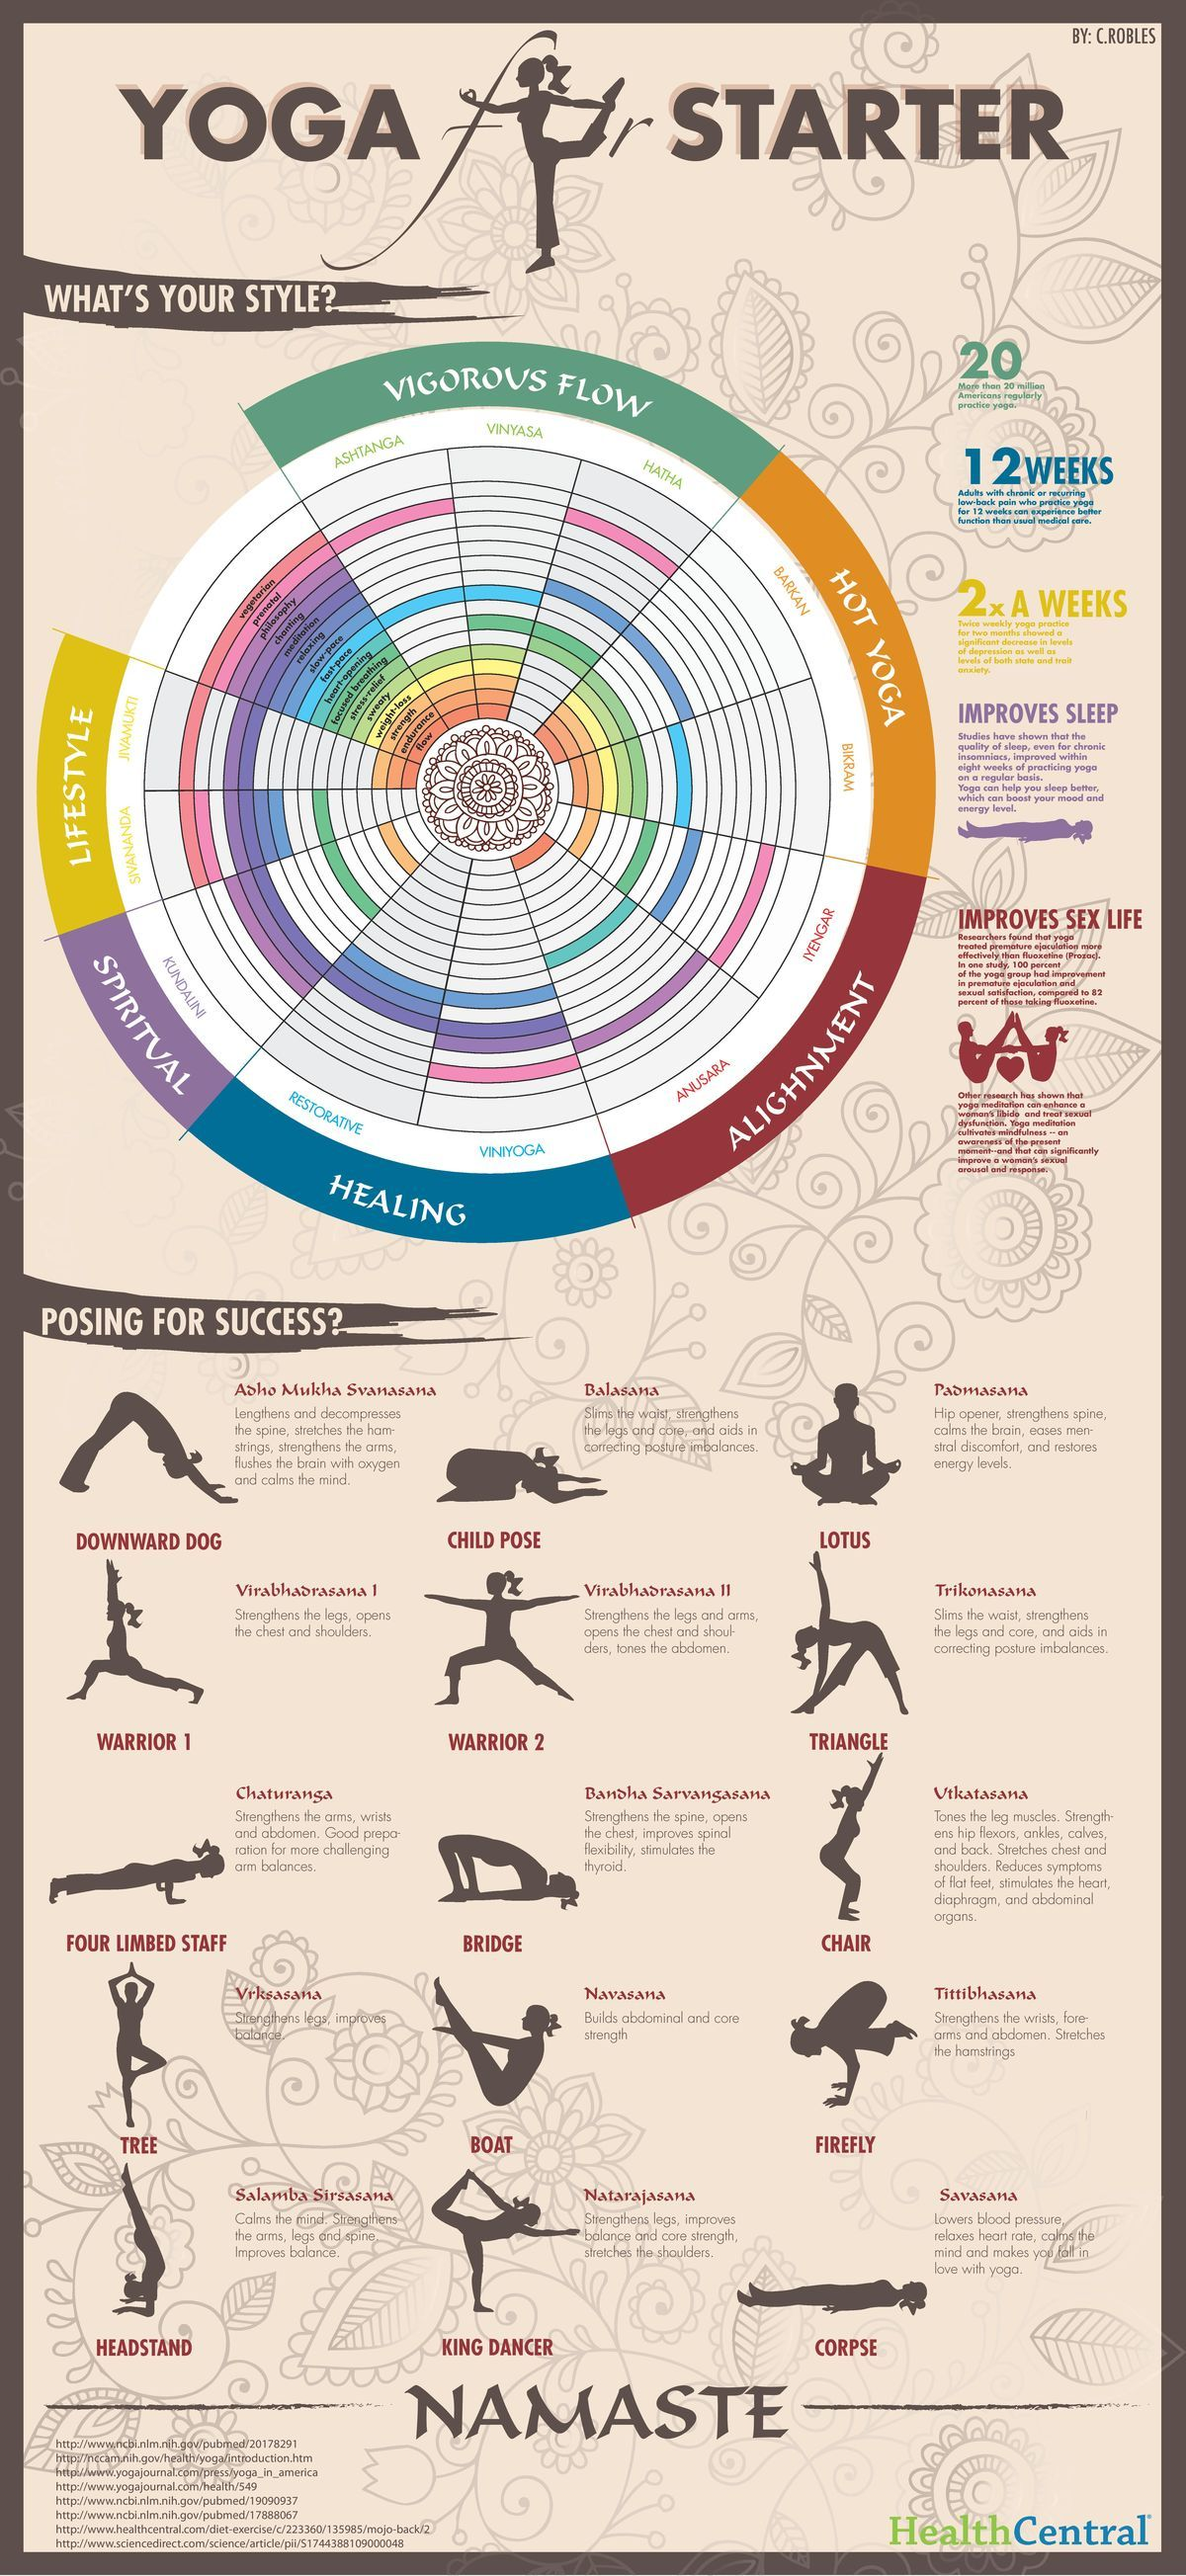 Yoga For Starters Infographic Is A Great Tool To Help Maintain Healthy Body And Mind During Menopause